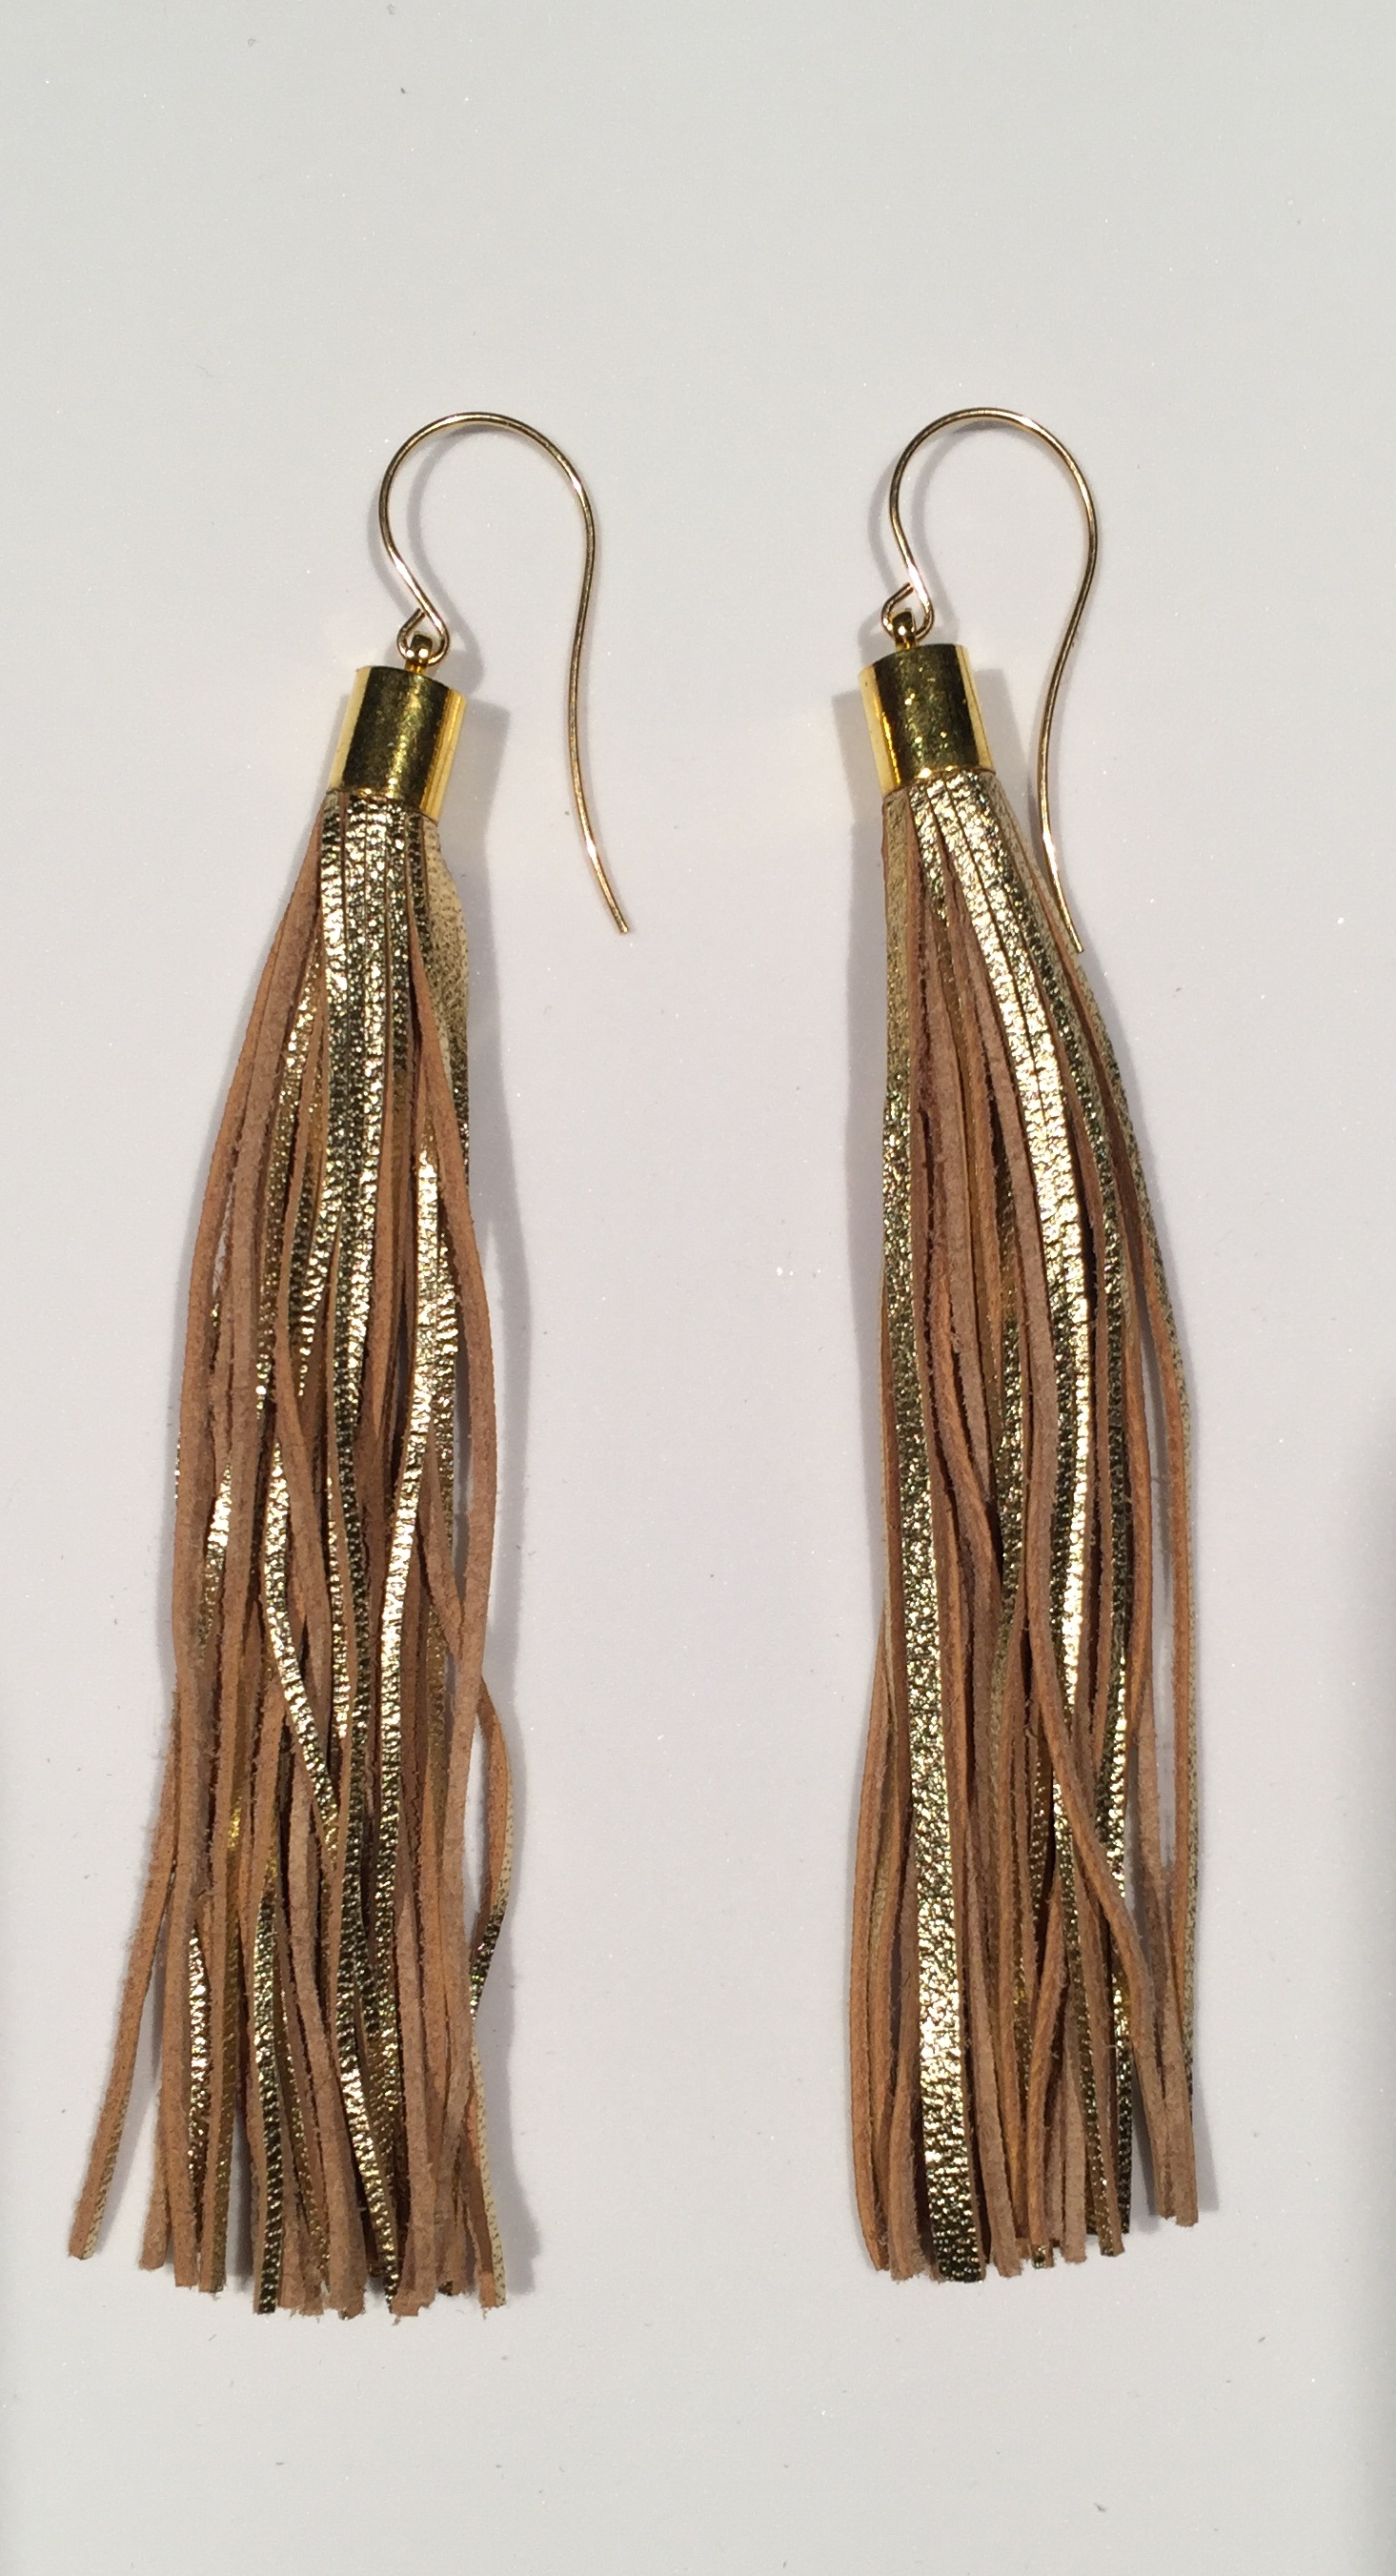 lastpart vici tassel astoria bordeaux tassle gorjana earrings products